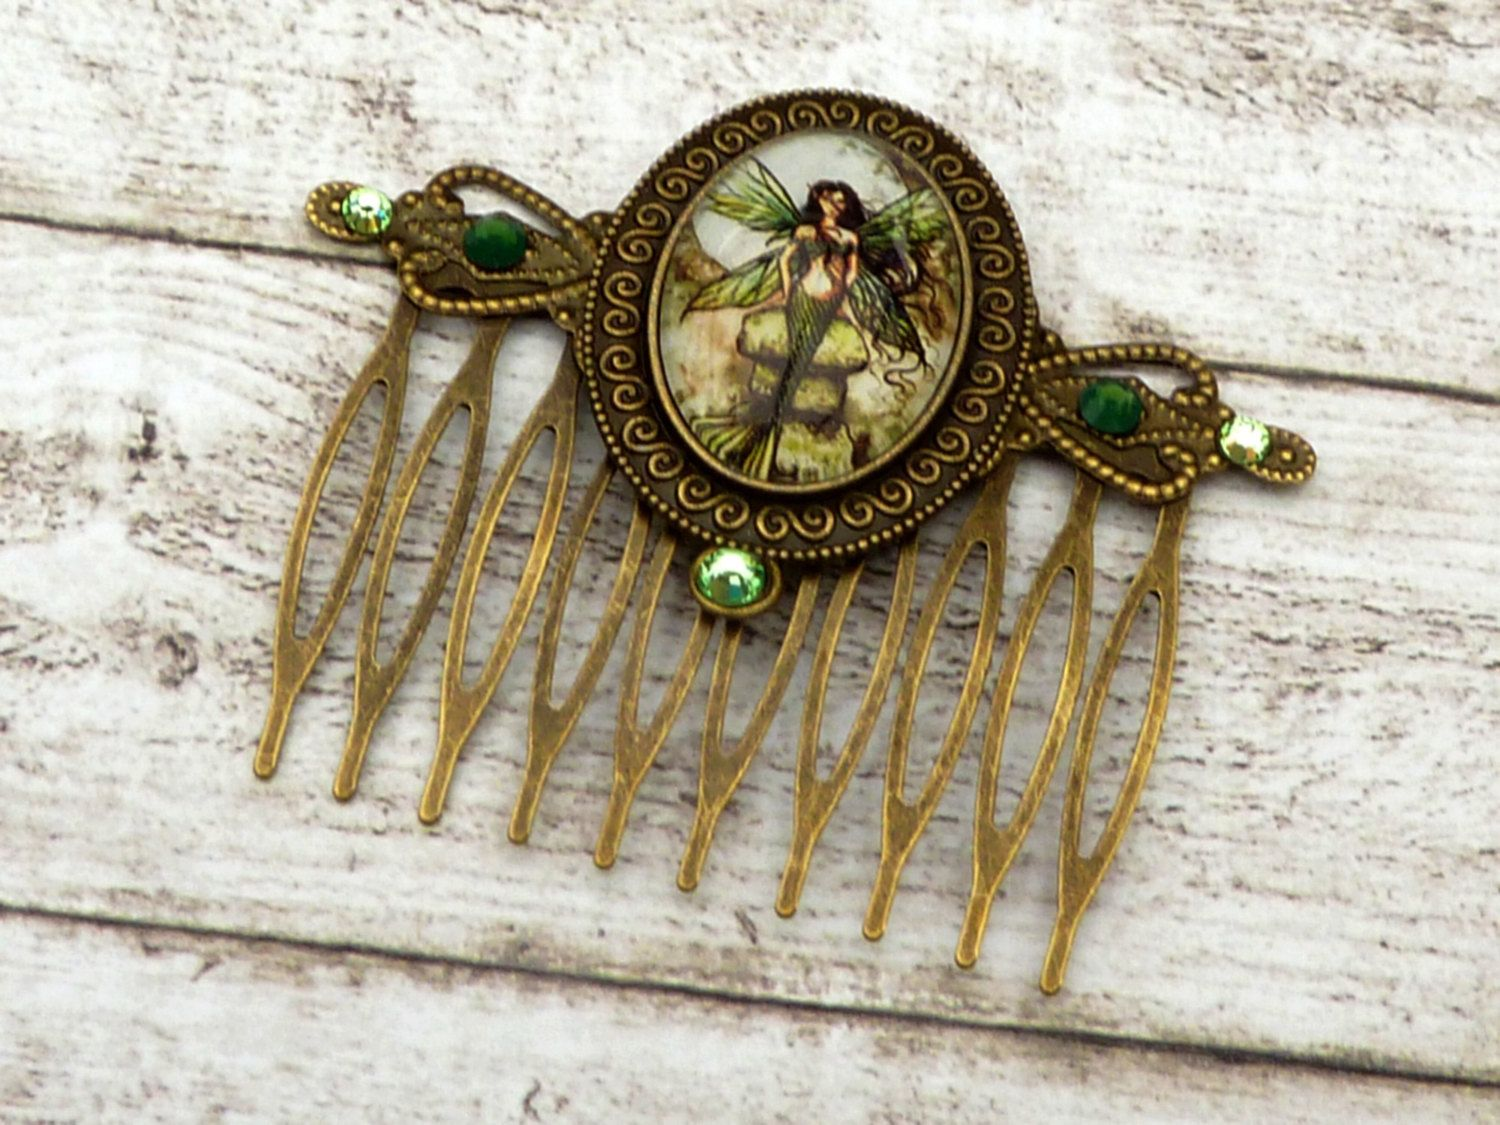 Mermaid hair comb, hair accessories tales, green bronze, little mermaid, girl hair comb, Fantasy, hair accessories for girls - pinned by pin4etsy.com